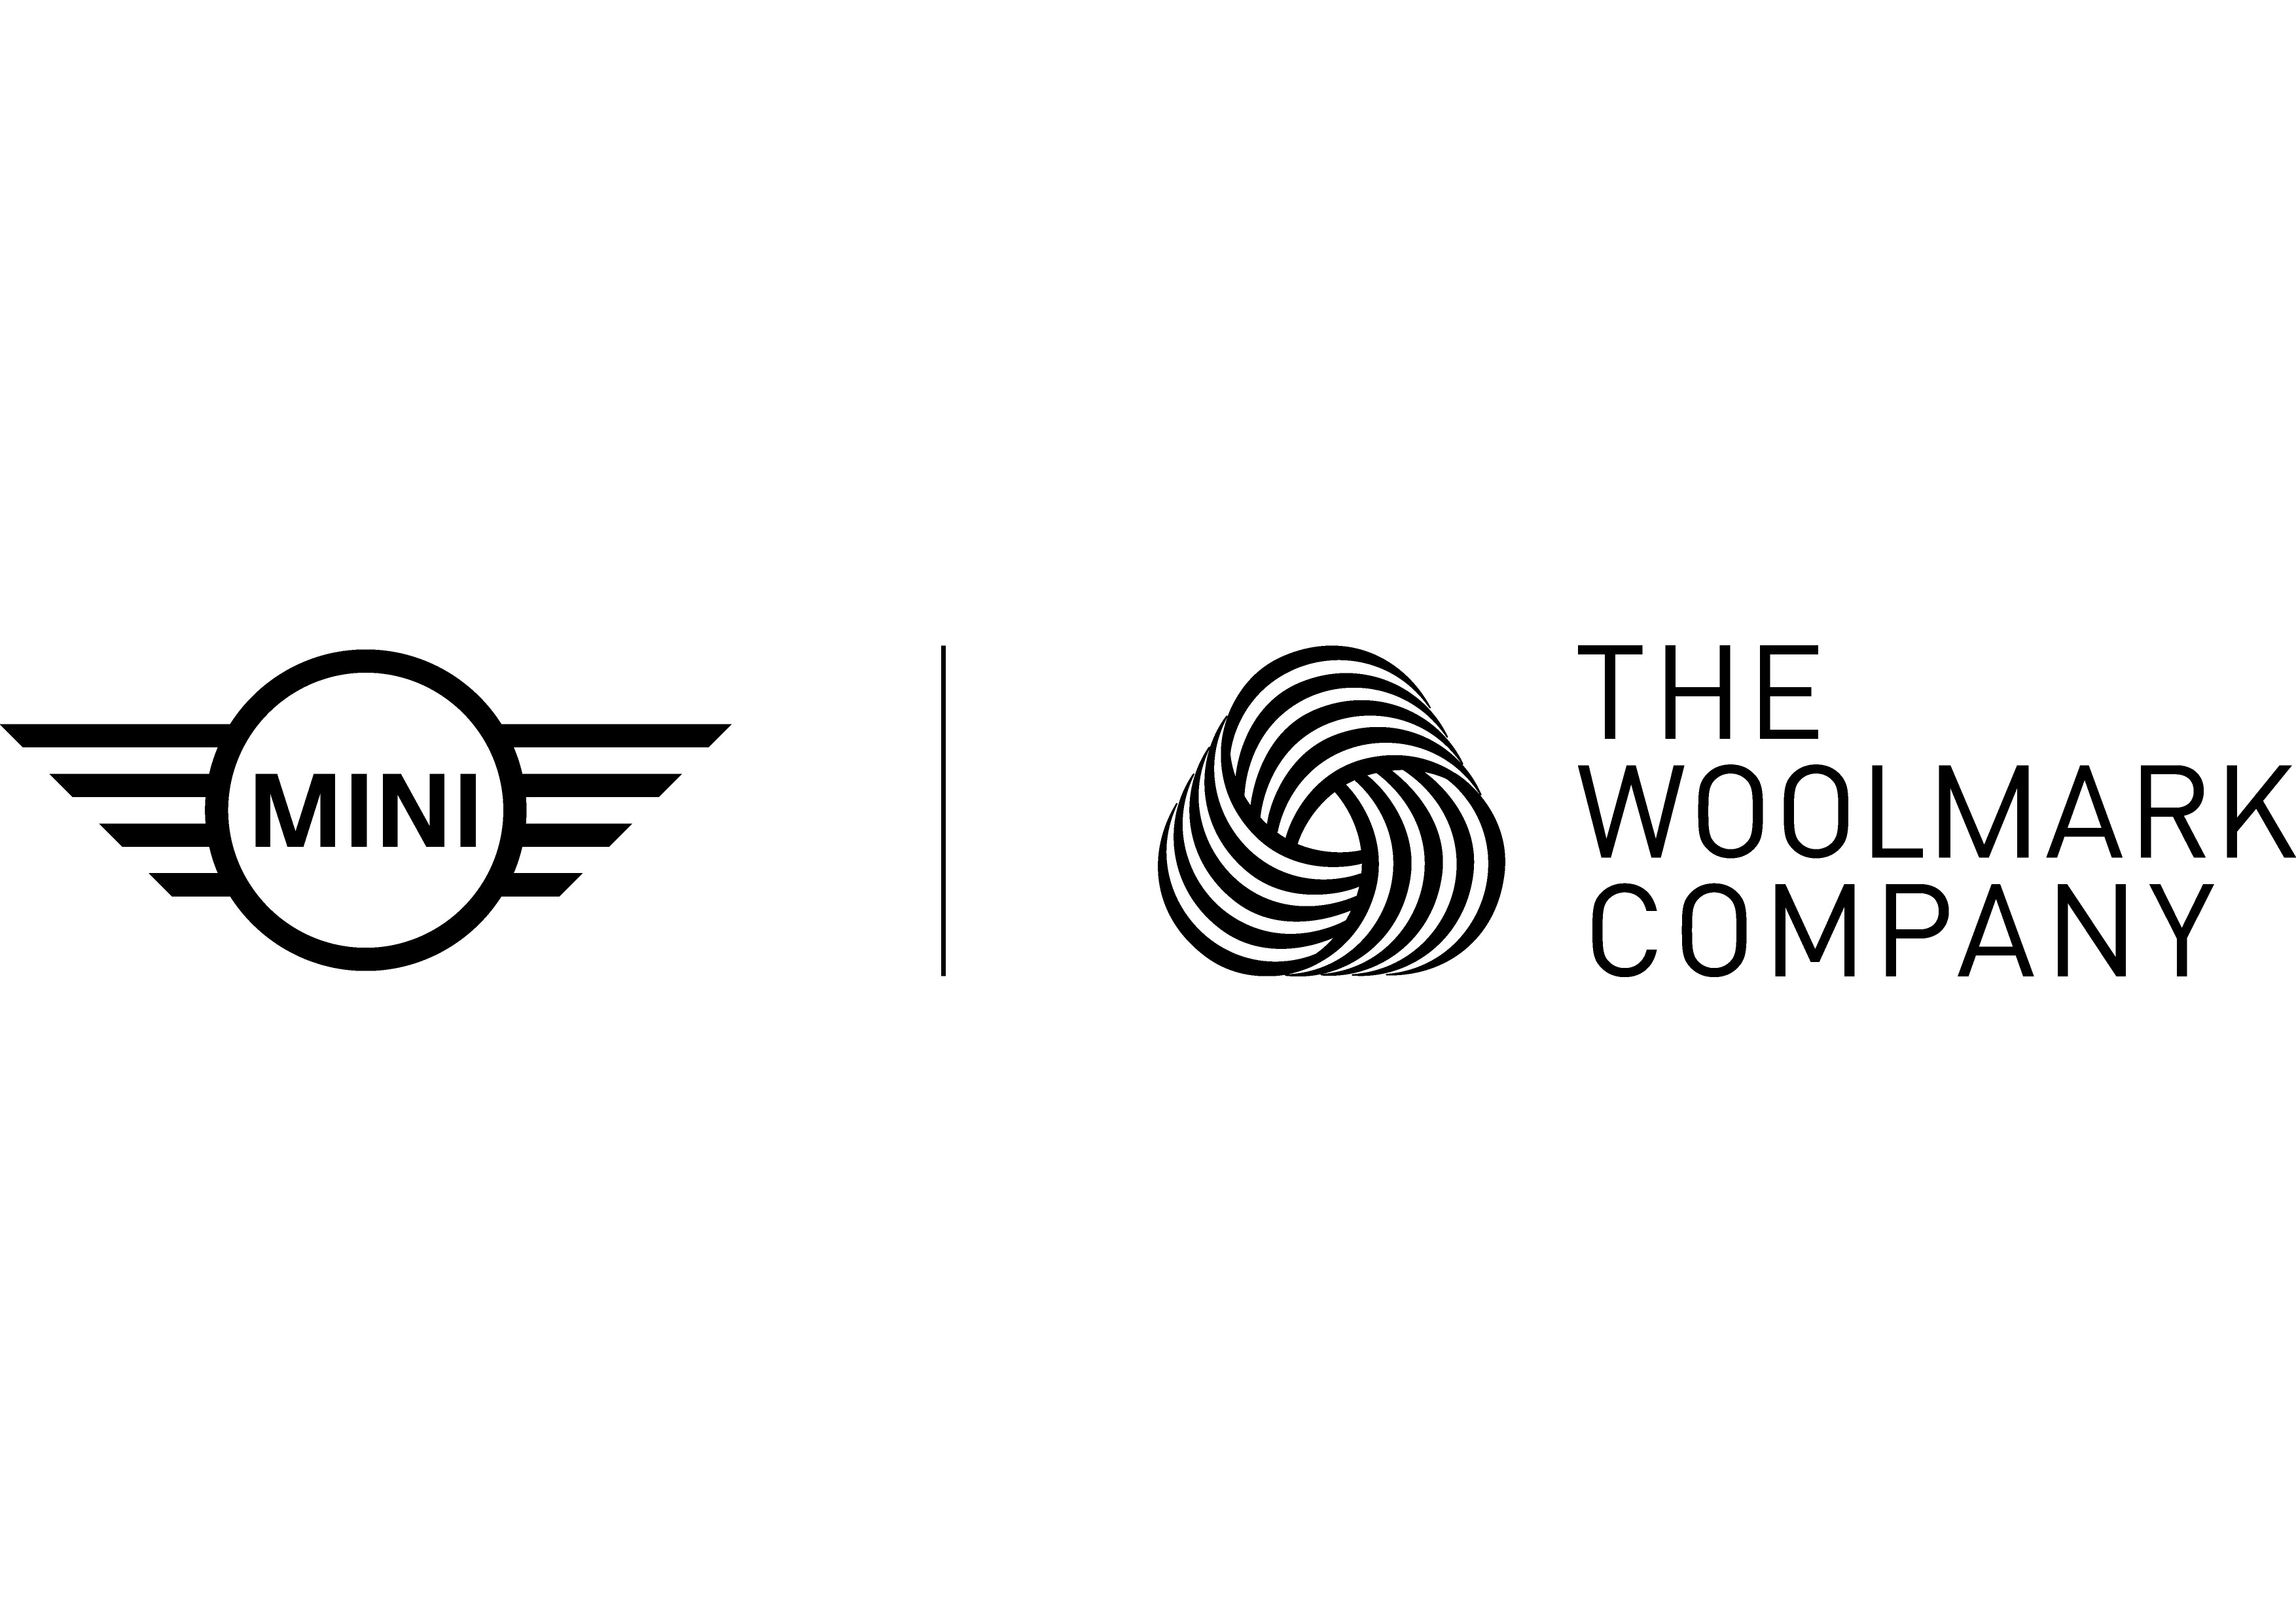 MINI, The Woolmark Company Rally Support for Young Fashion